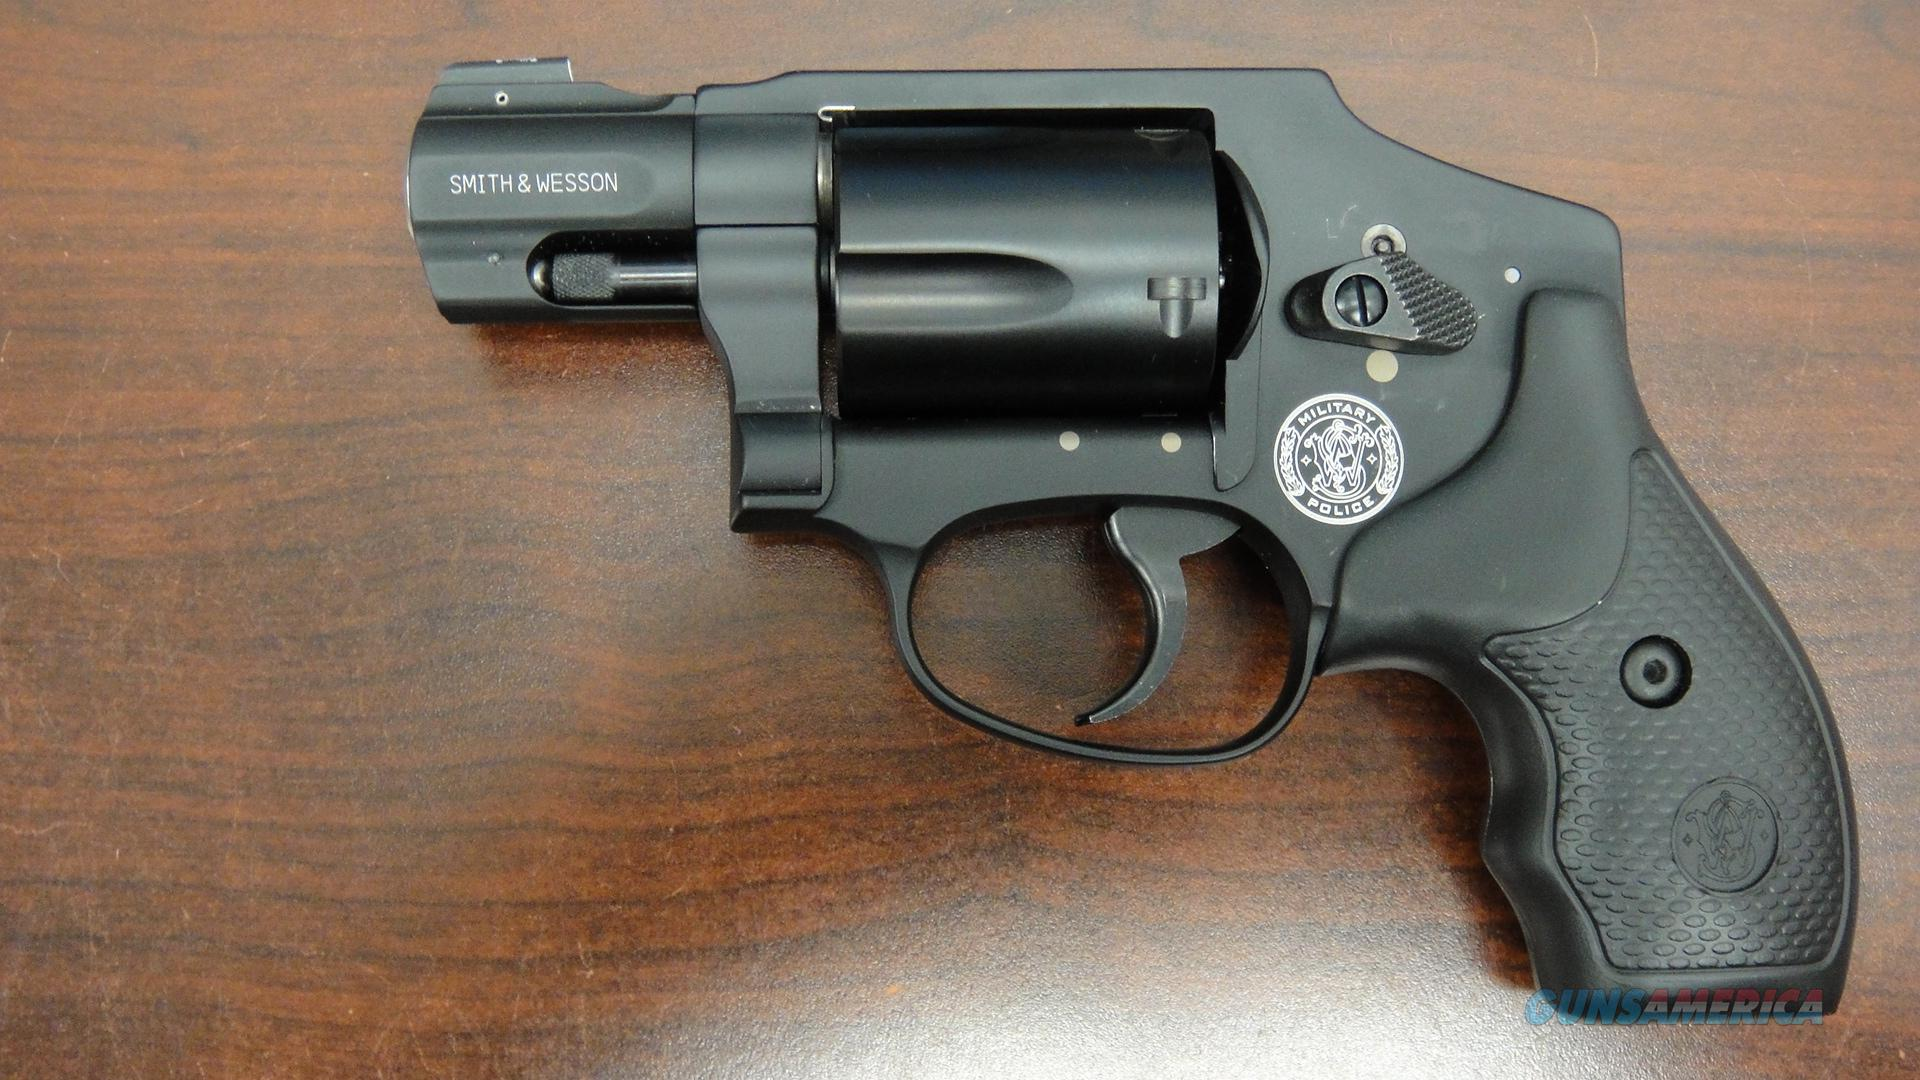 Smith and Wesson M&P 340 in .357 Magnum for sale